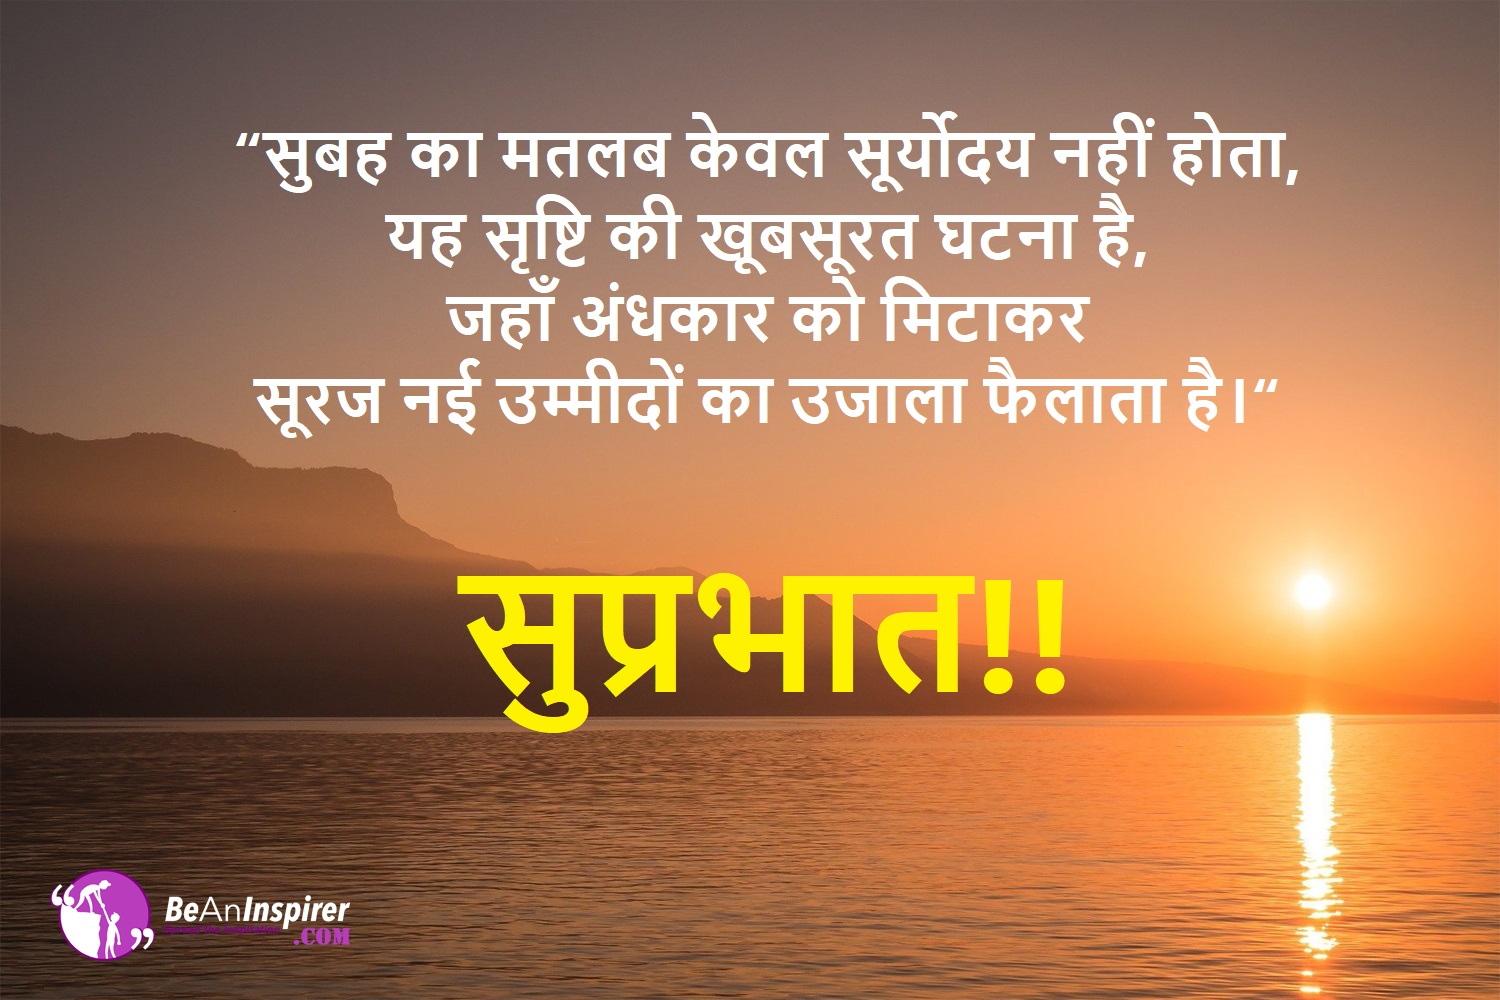 Top 100 Good Morning Quotes in Hindi with Images